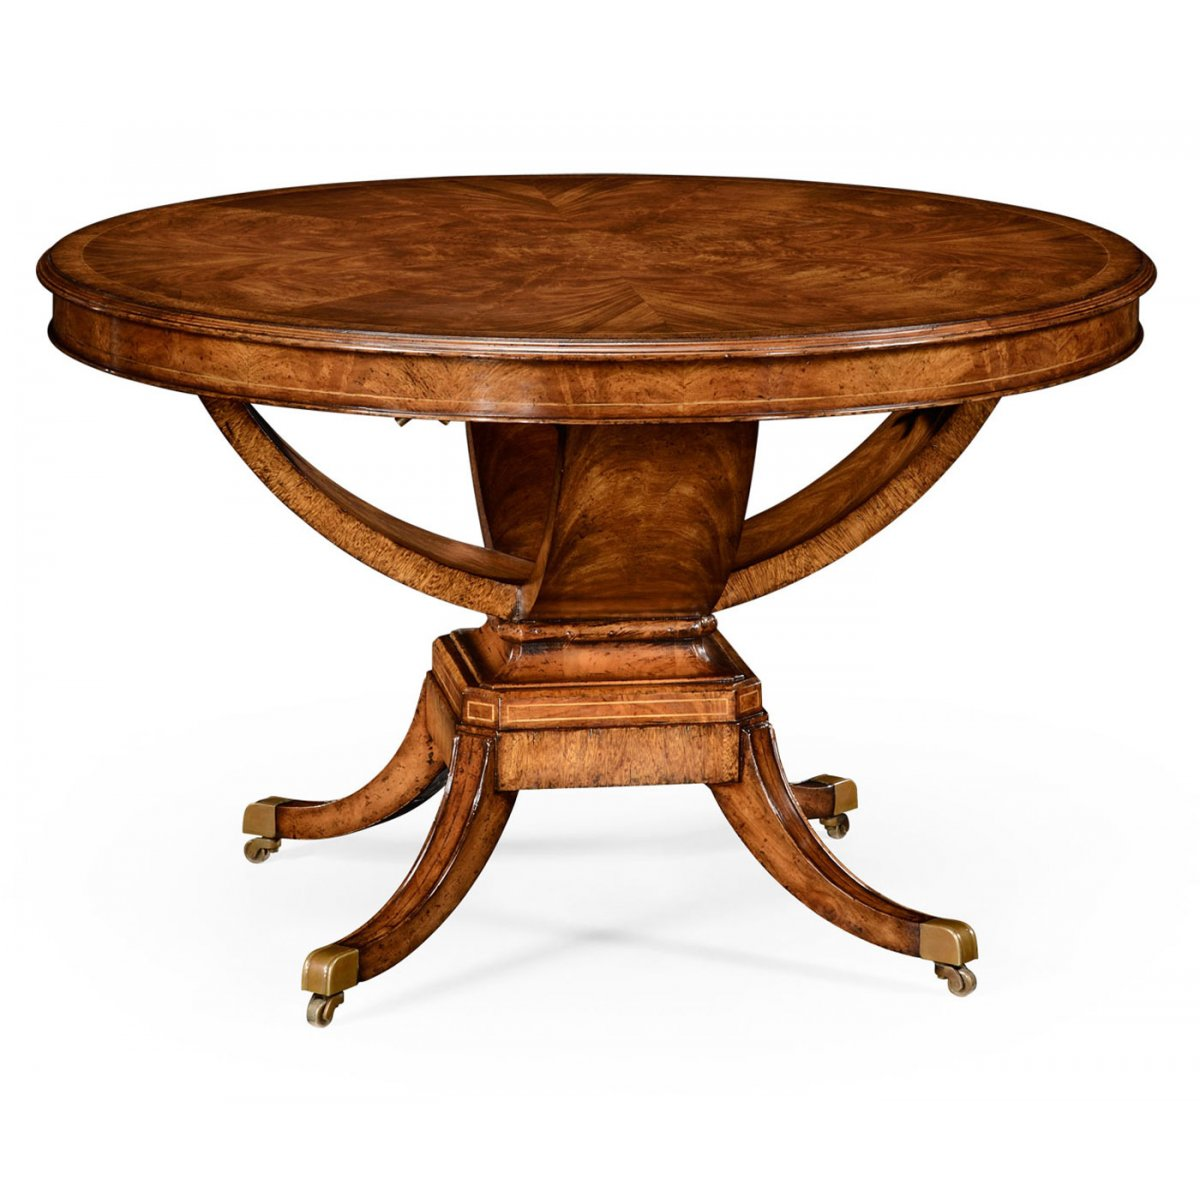 6 seater round dining table walnut swanky interiors for 6 seater dining table